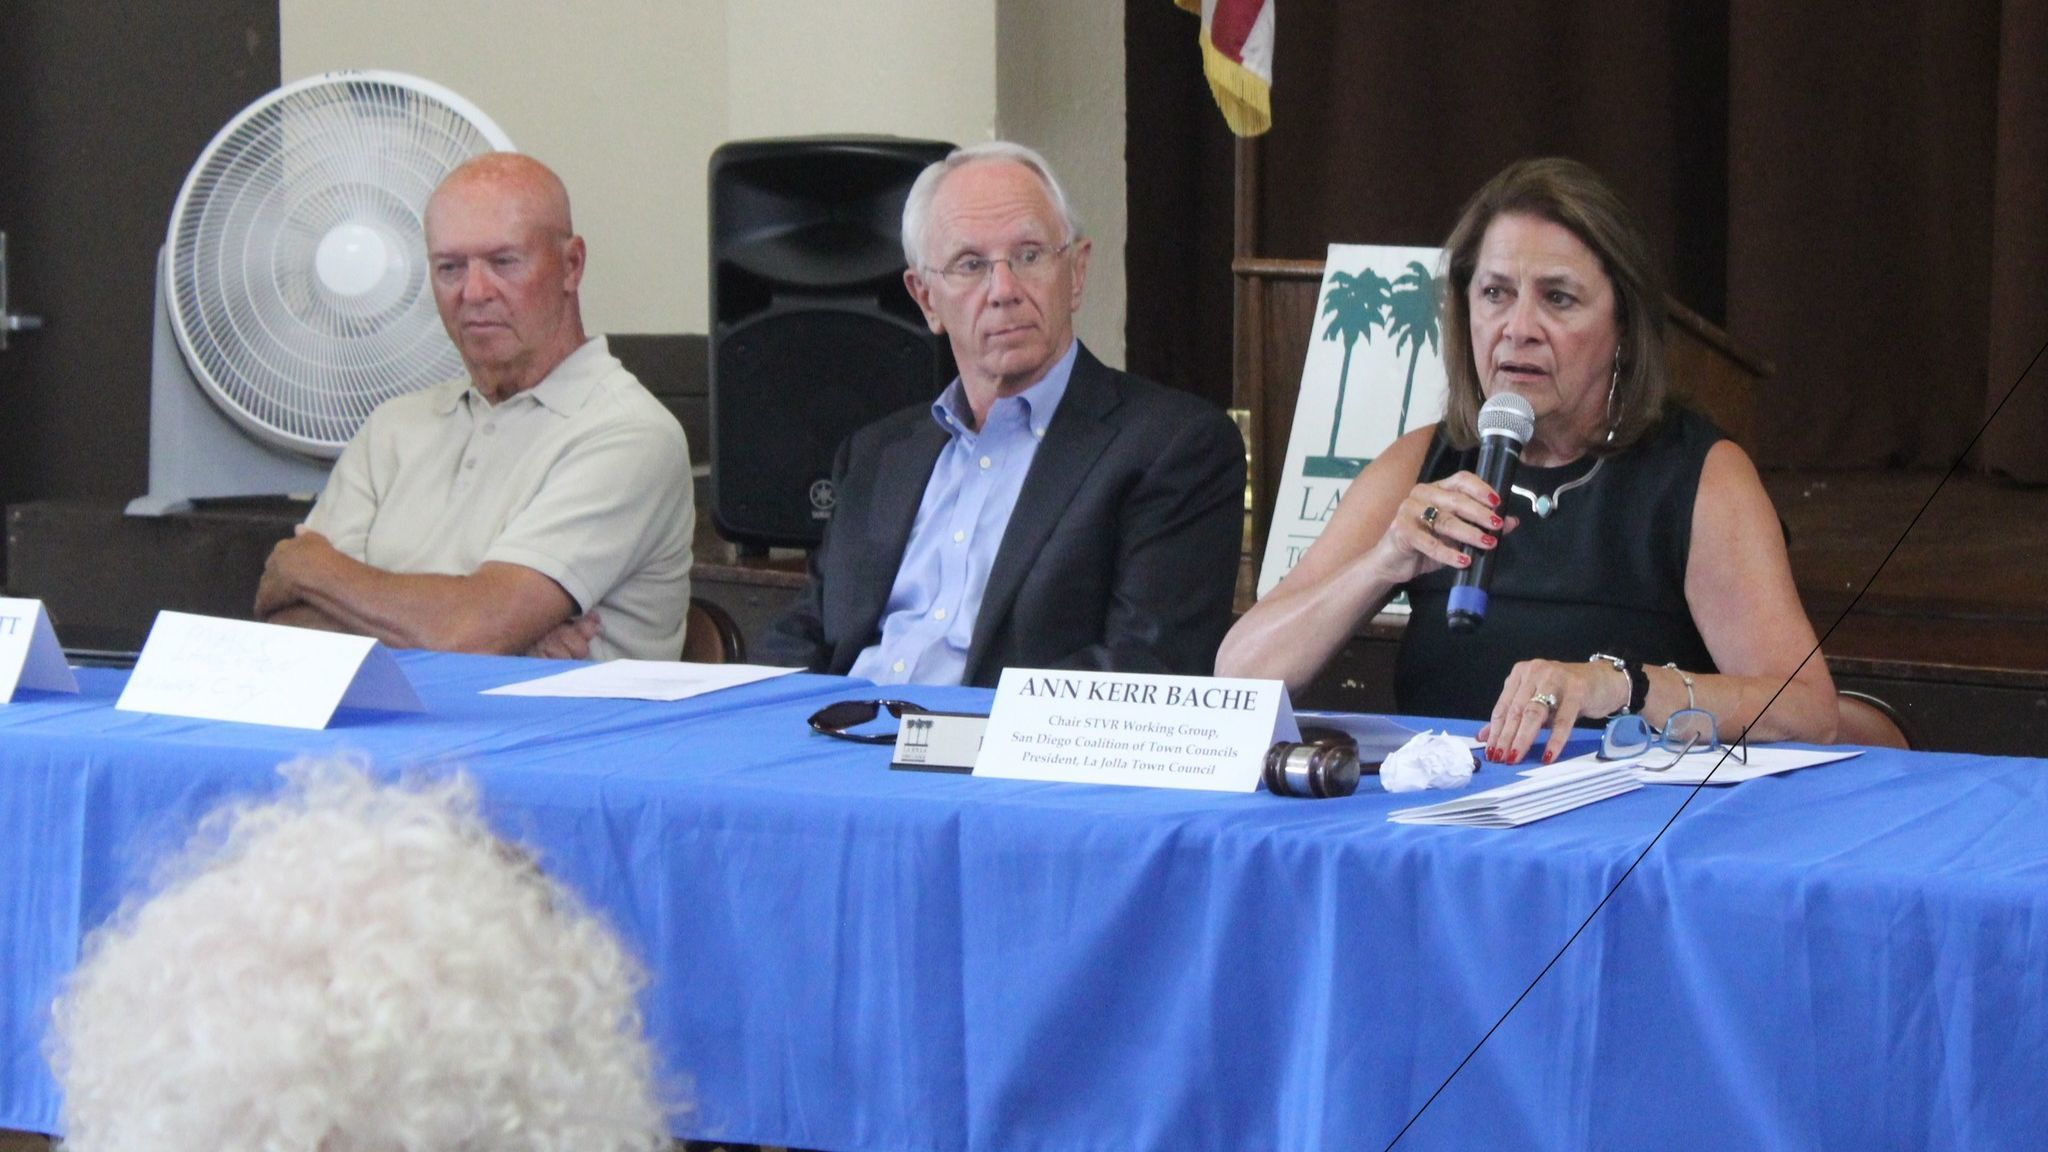 Mission Beach Town Council president Gary Wonacott, from left, University City Community Association chair Mack Langston and Ann Kerr Bache